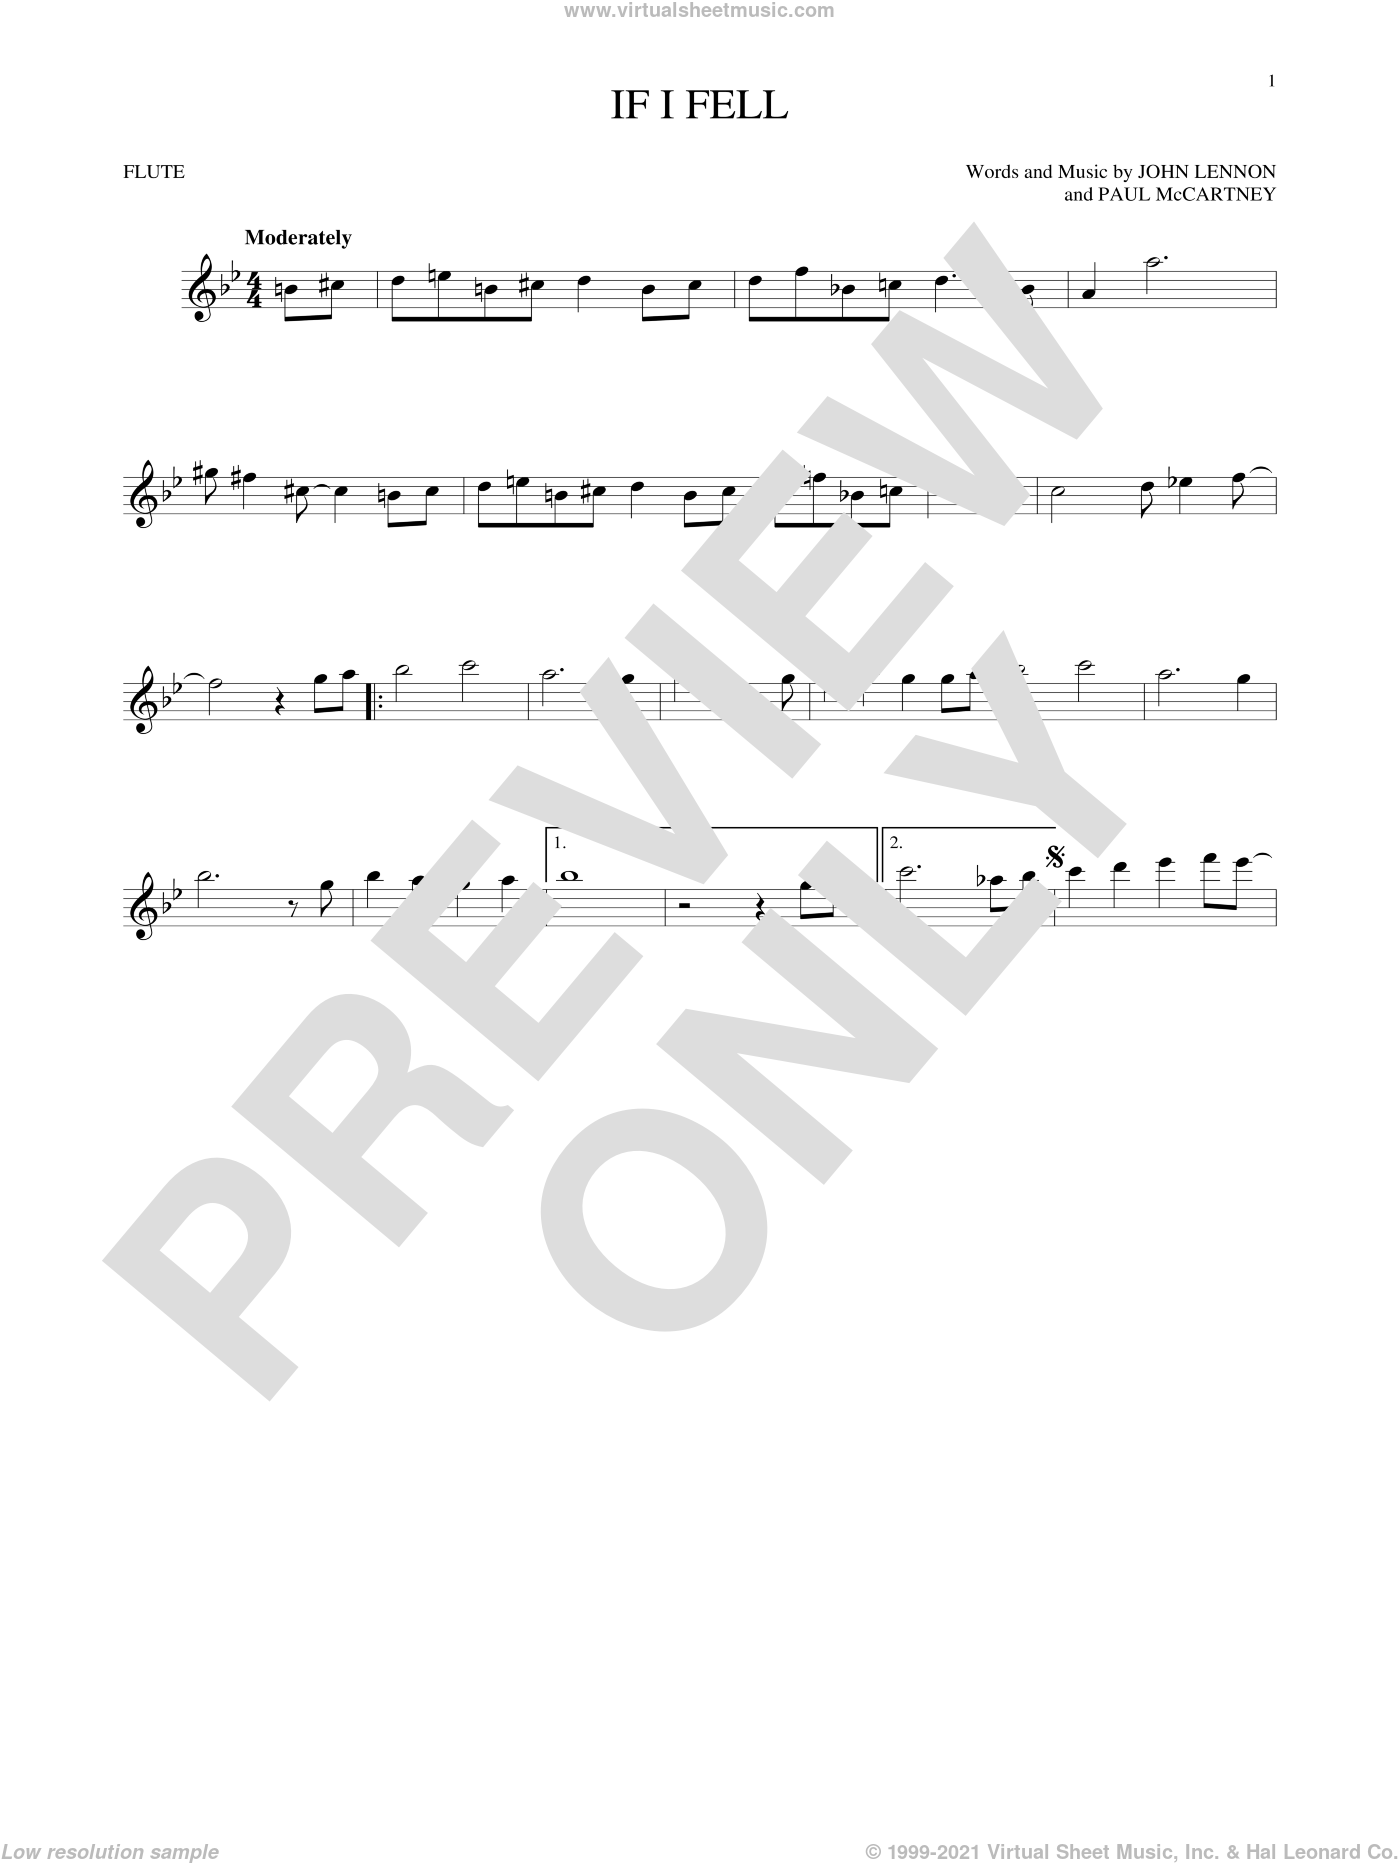 If I Fell sheet music for flute solo by The Beatles, John Lennon and Paul McCartney, intermediate skill level